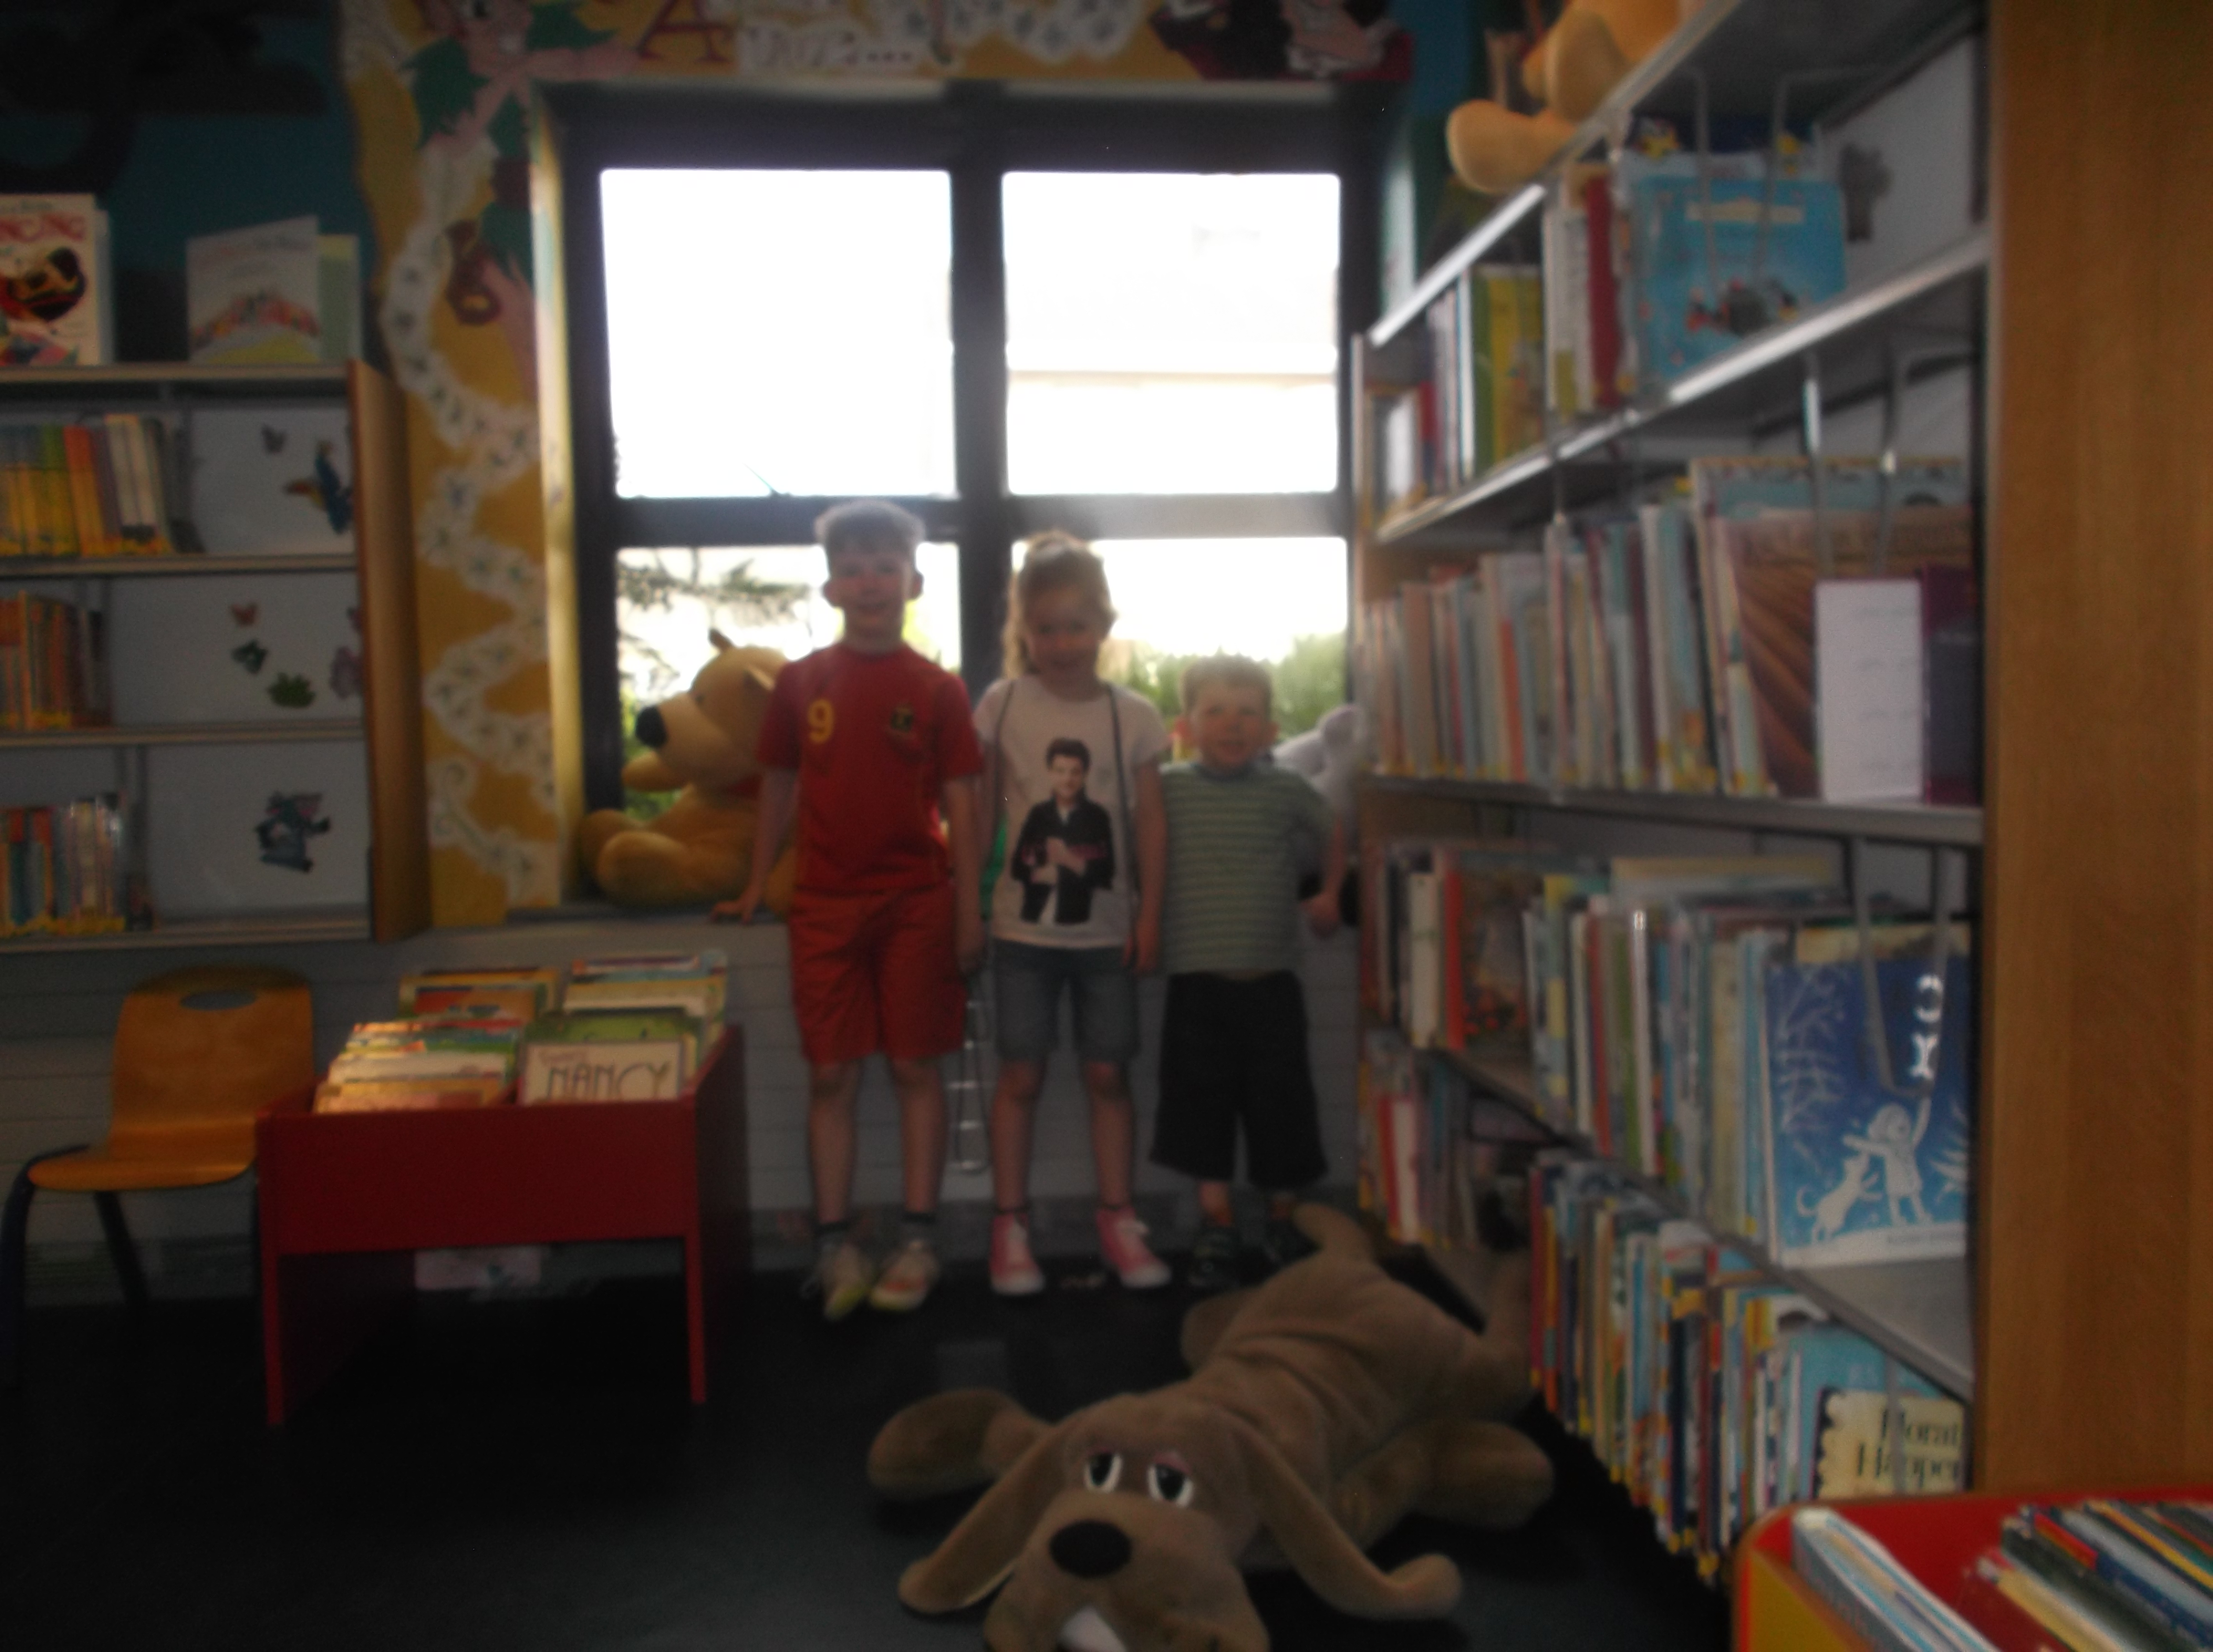 Donegal visitors to Cashel library